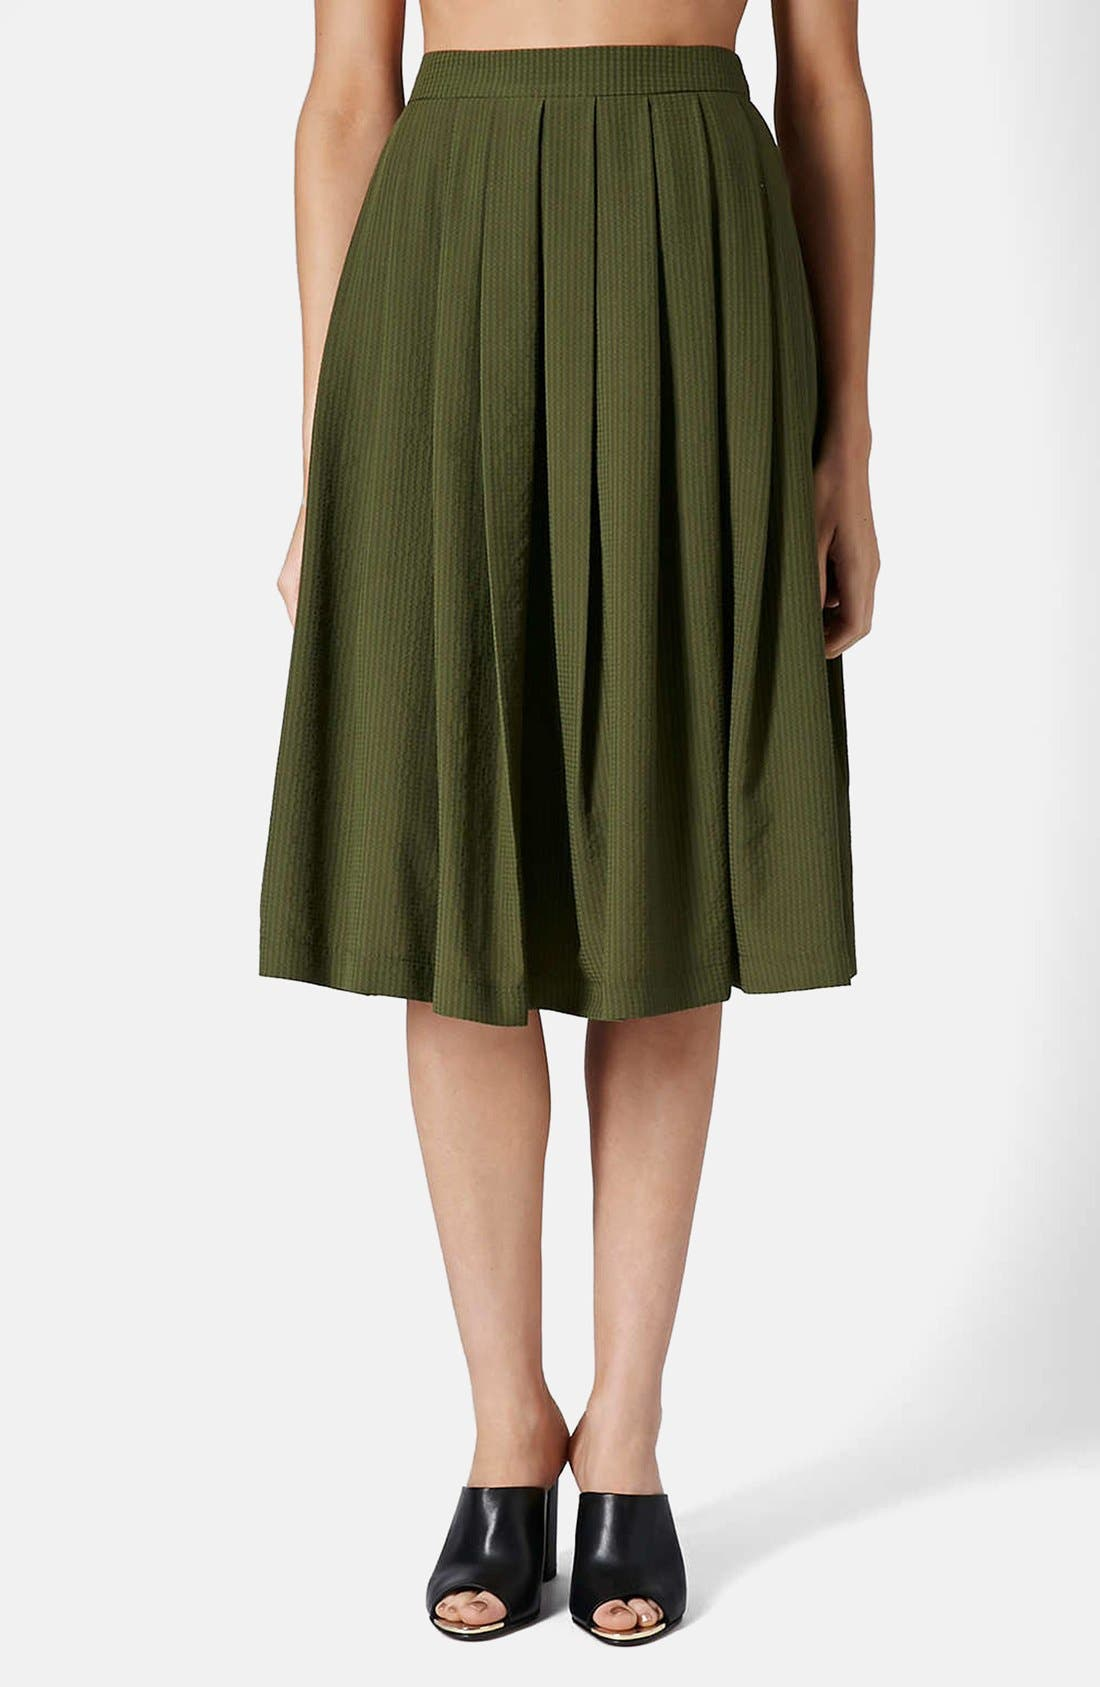 Alternate Image 1 Selected - Topshop Seersucker Midi Skirt